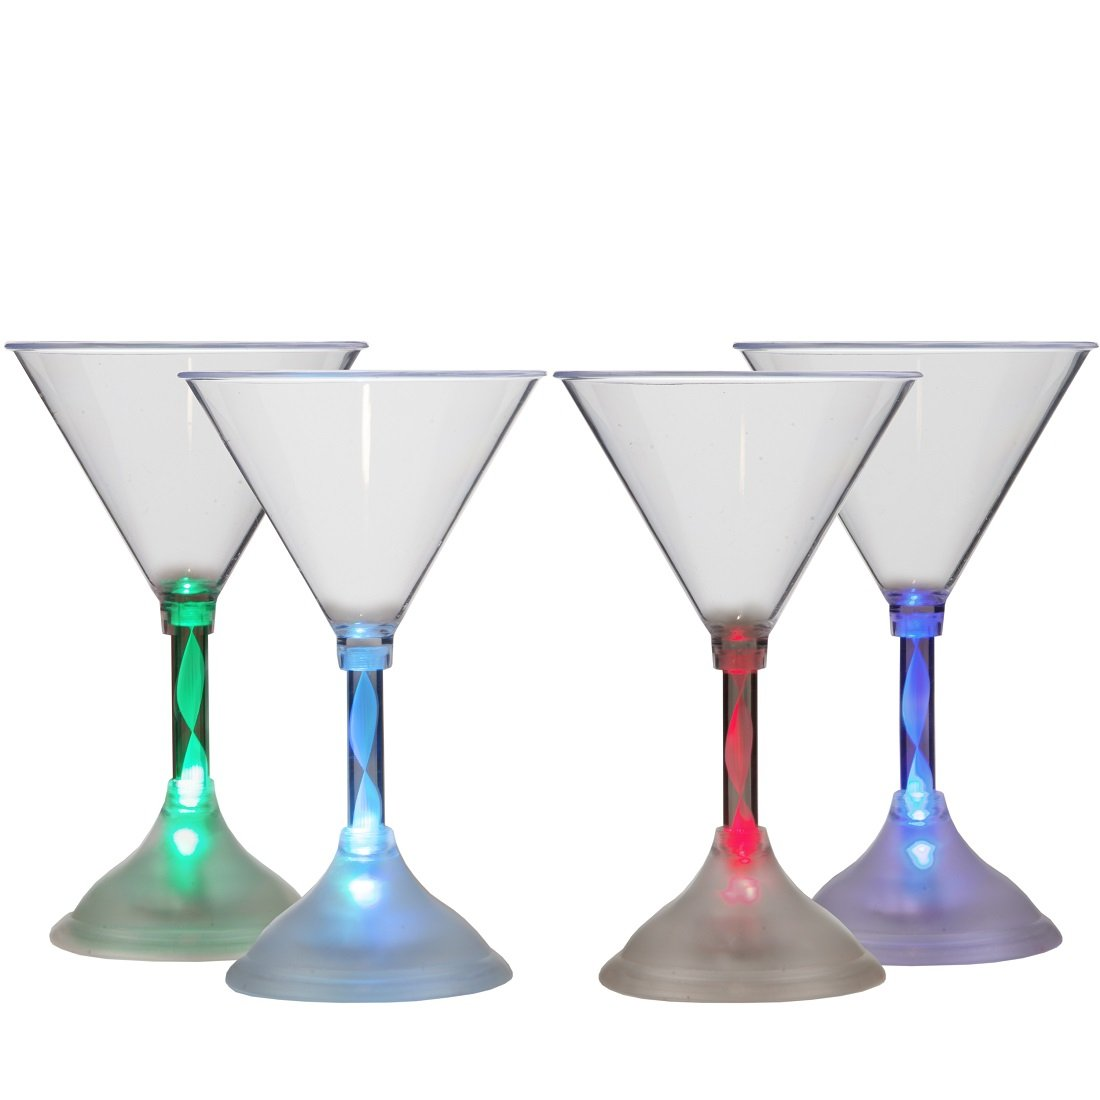 Lily's Home LED Light Up Flashing Plastic Martini Cocktail Glasses, Color Changing with 7 Different Colors and Rainbow Mode, Essential For Parties (6 oz. Each, Set of 4) by Lilyshome